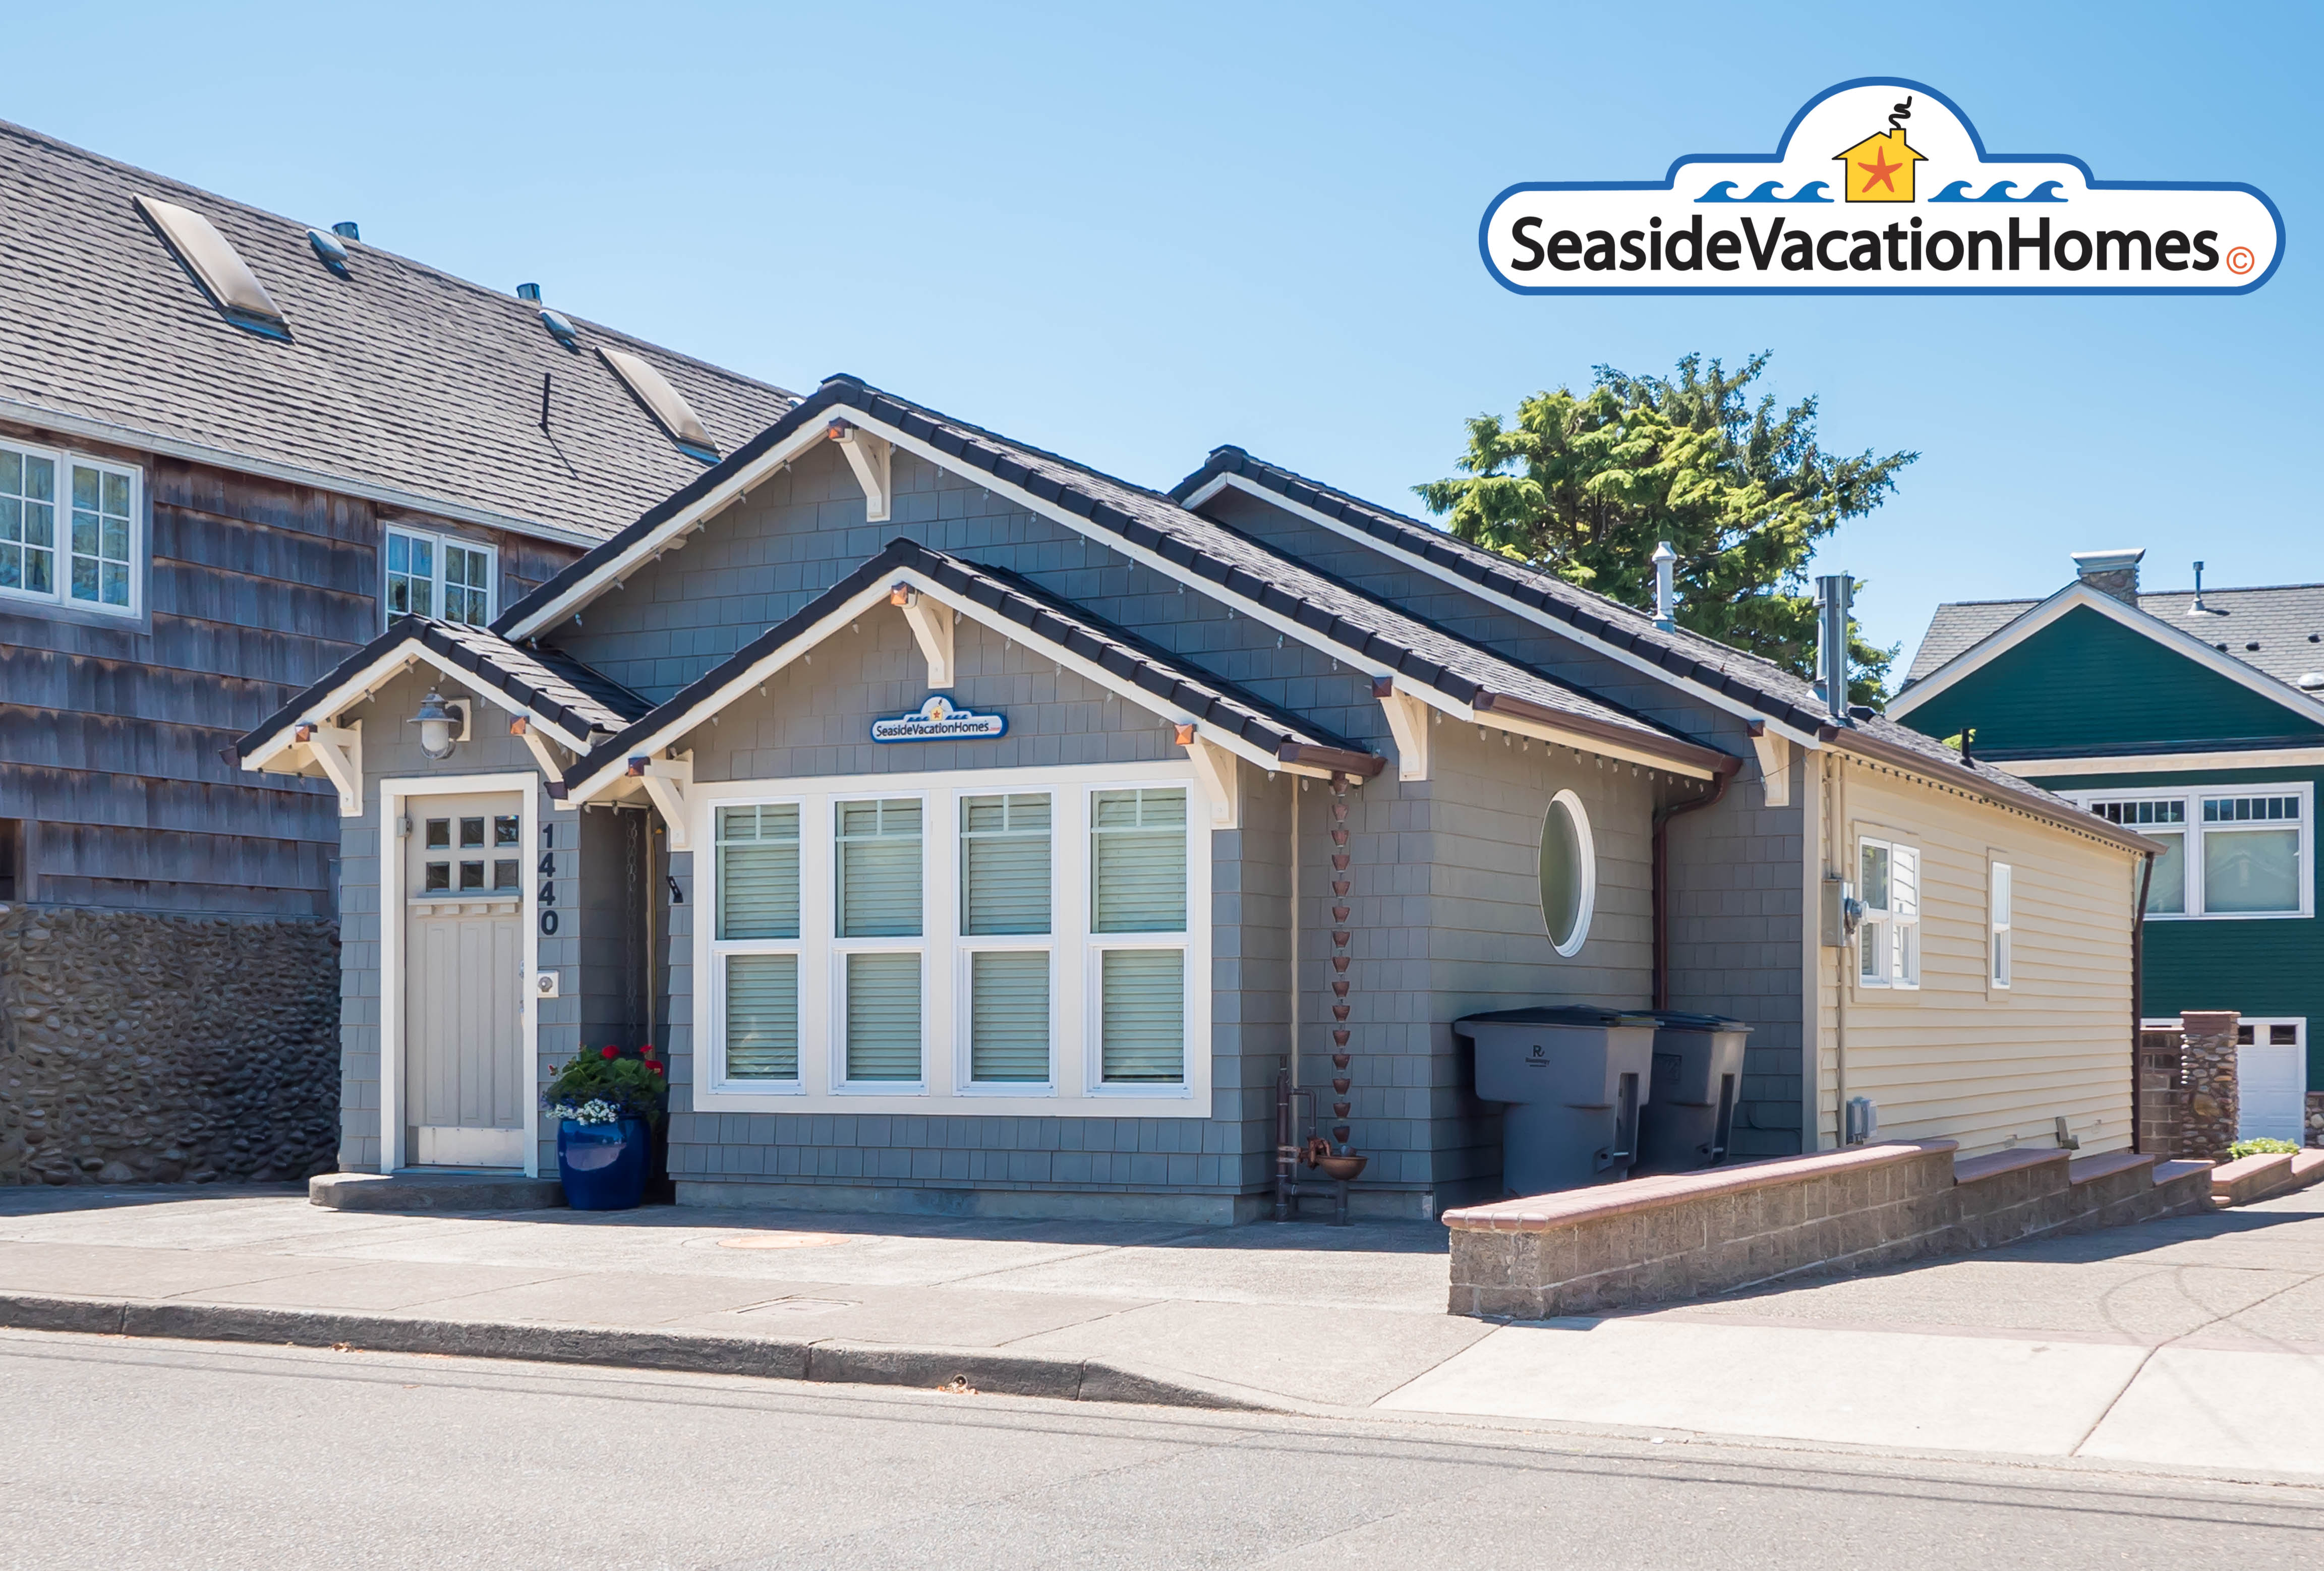 Vacation home with 2 bedrooms and Hot tub in Seaside, OR for rent